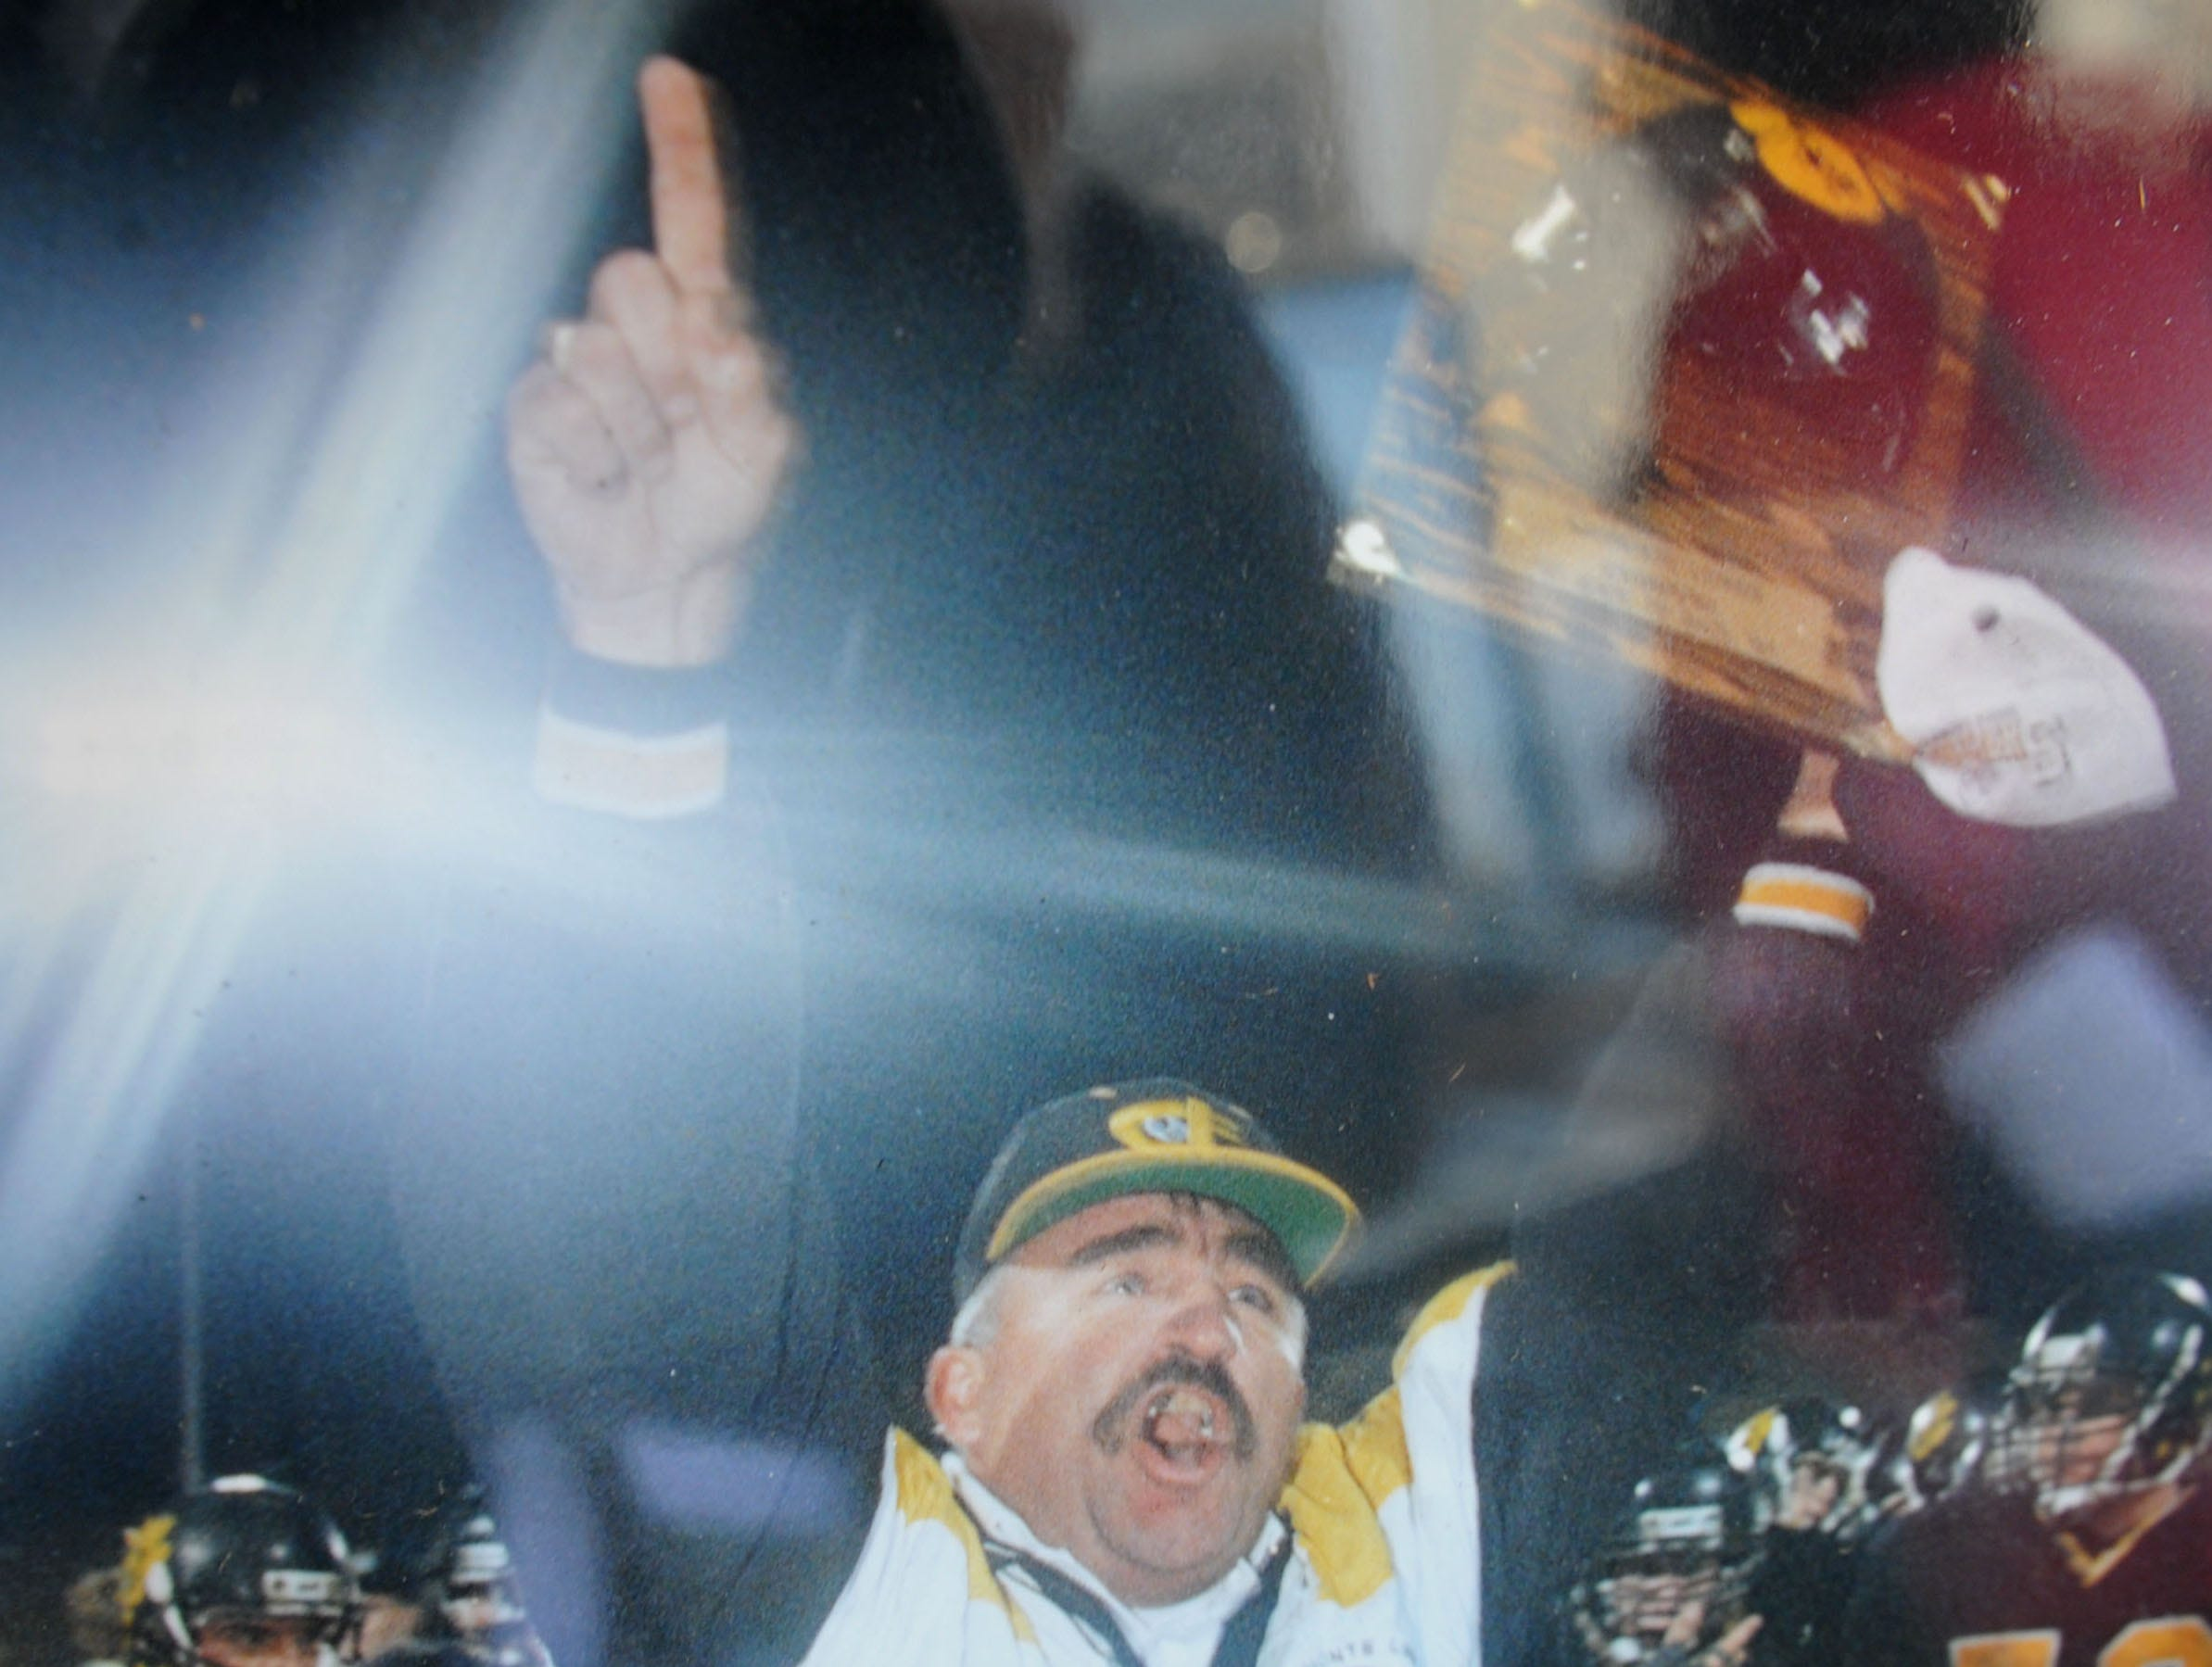 A photo of George Hurley celebrating after Newbury Park won the CIF football title in 1993 was on display during Saturday's tribute to Hurley at the school's football stadium that bears Hurley's name.